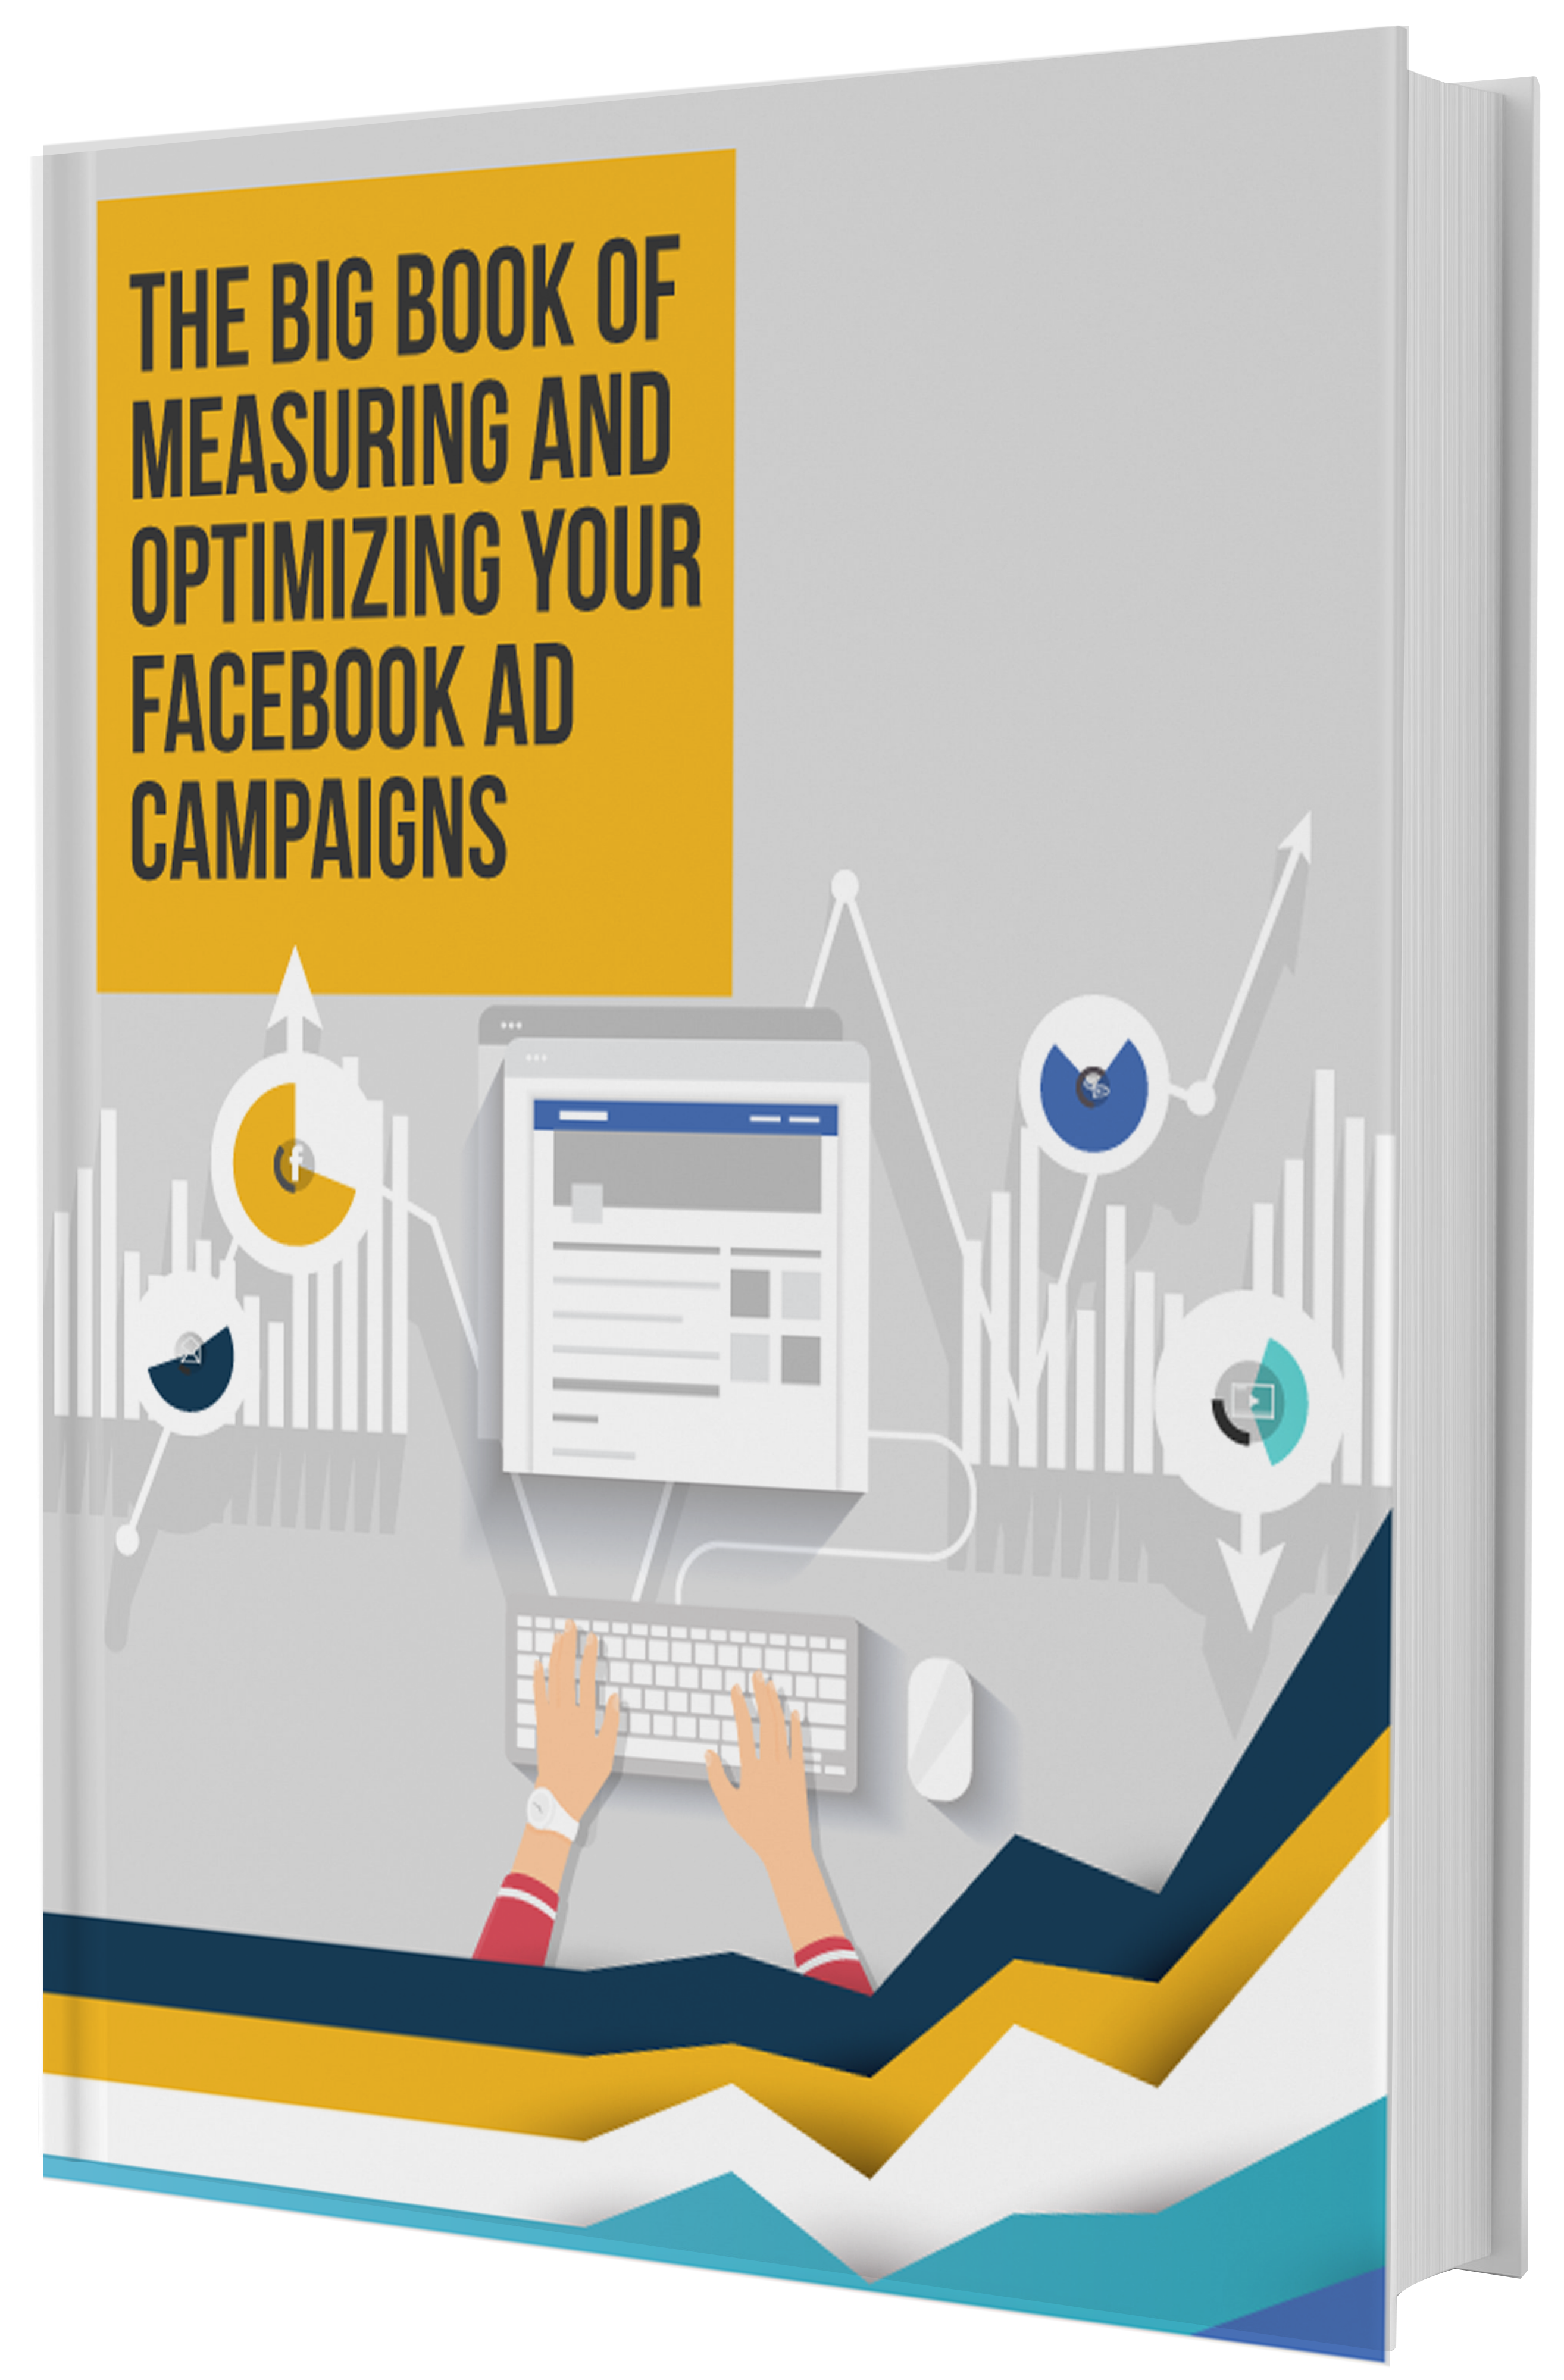 Big Book of Measuring and Optimizing Facebook Ad Campaigns Ebook Cover.png